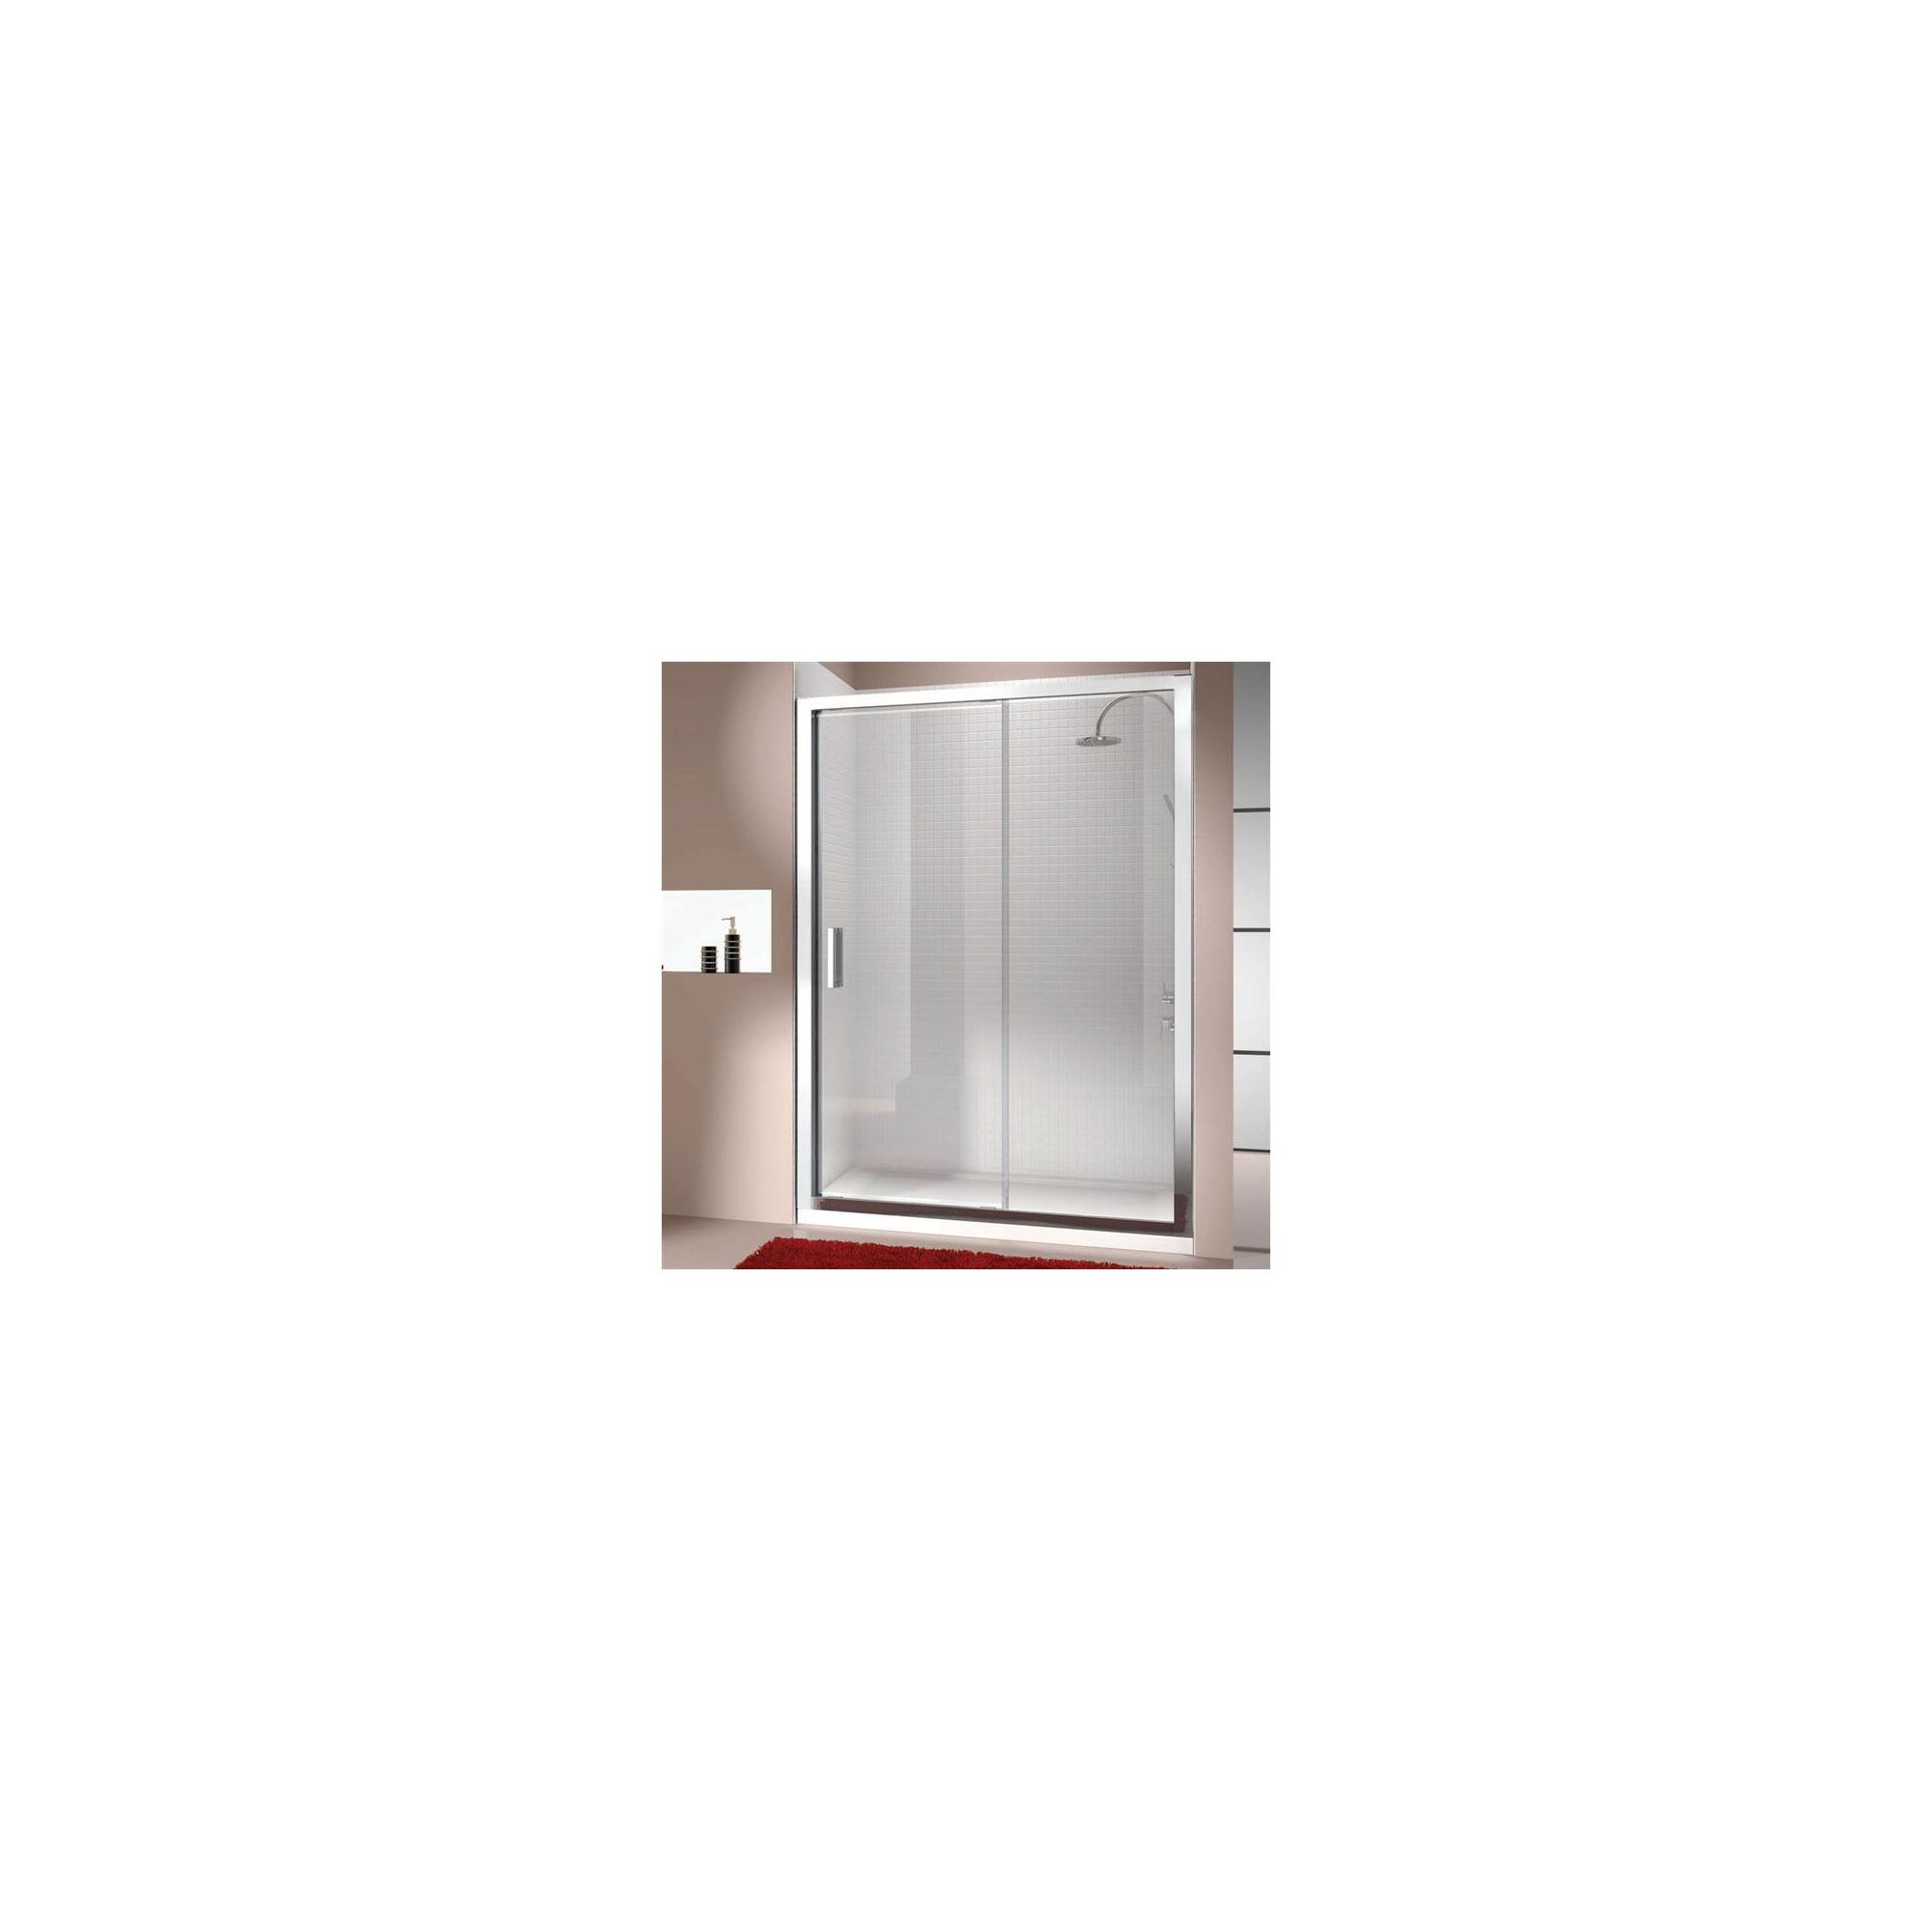 Merlyn Vivid Eight Sliding Door Alcove Shower Enclosure, 1100mm x 800mm, Low Profile Tray, 8mm Glass at Tesco Direct